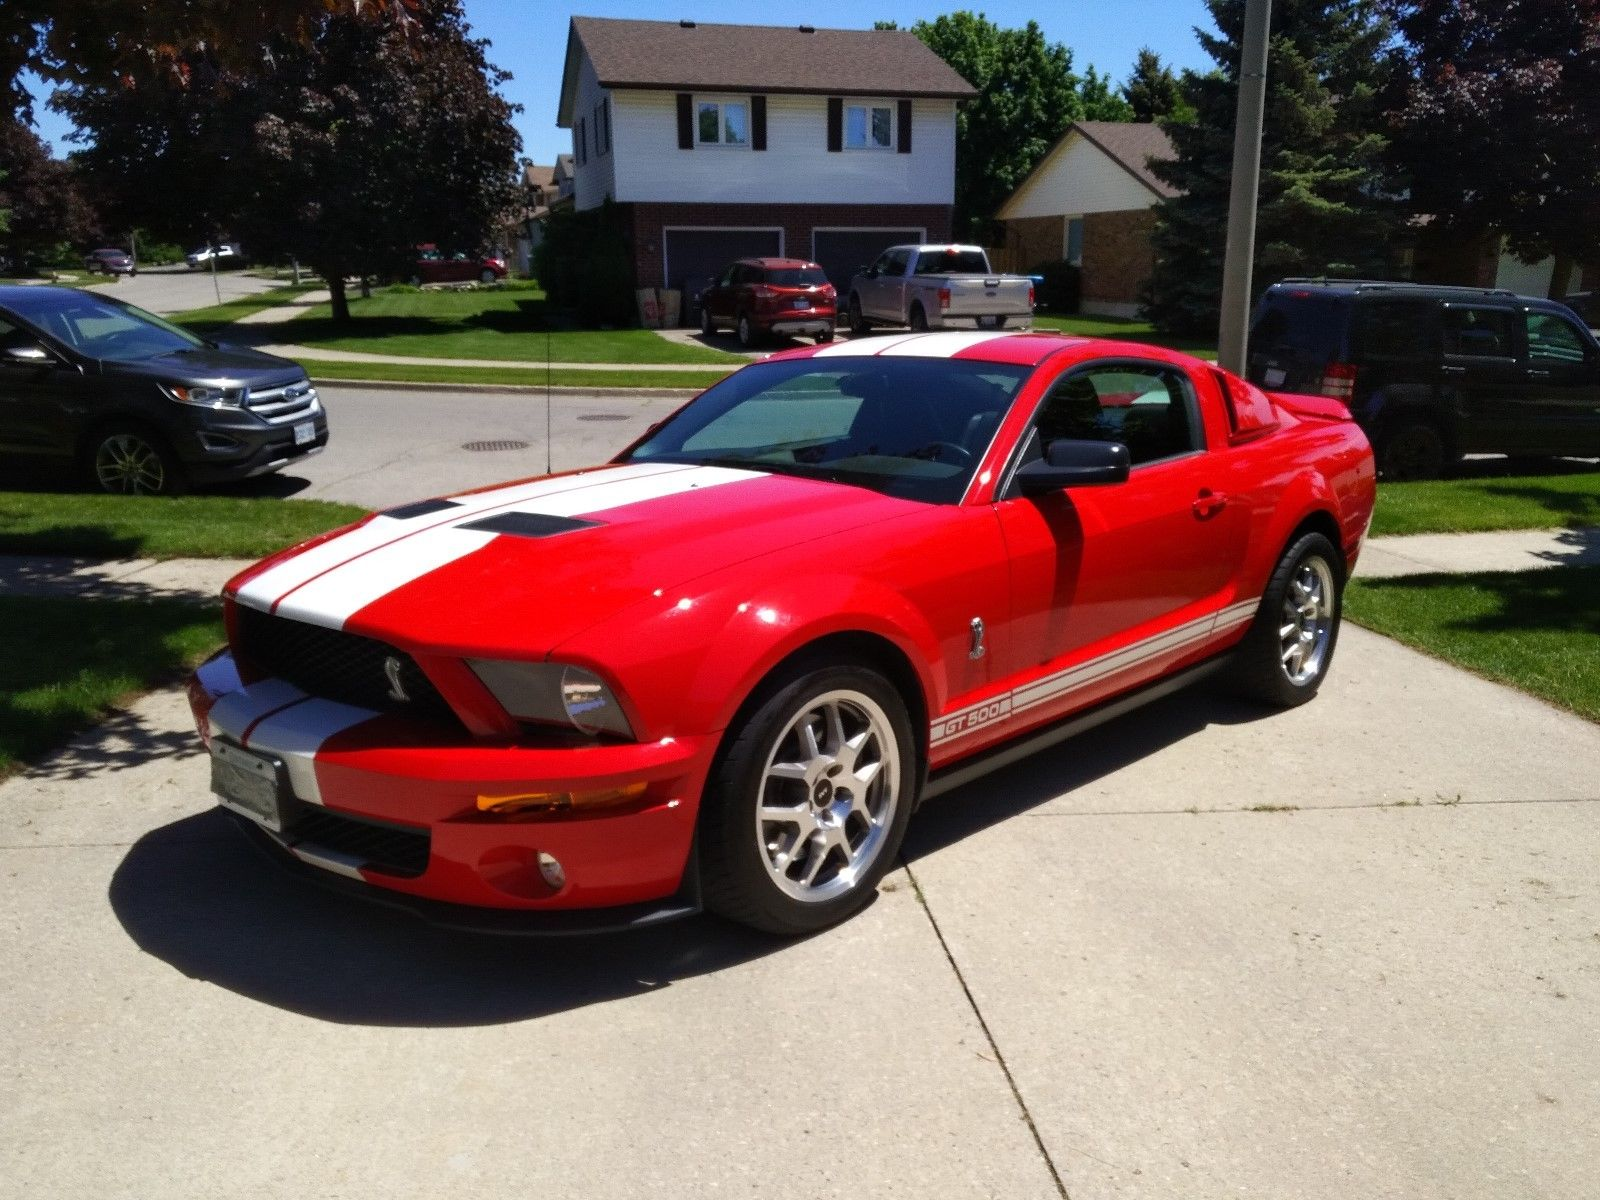 Awesome 2007 ford mustang gt500 2007 shelby gt500 low mileage signed by shelby 2018 2019